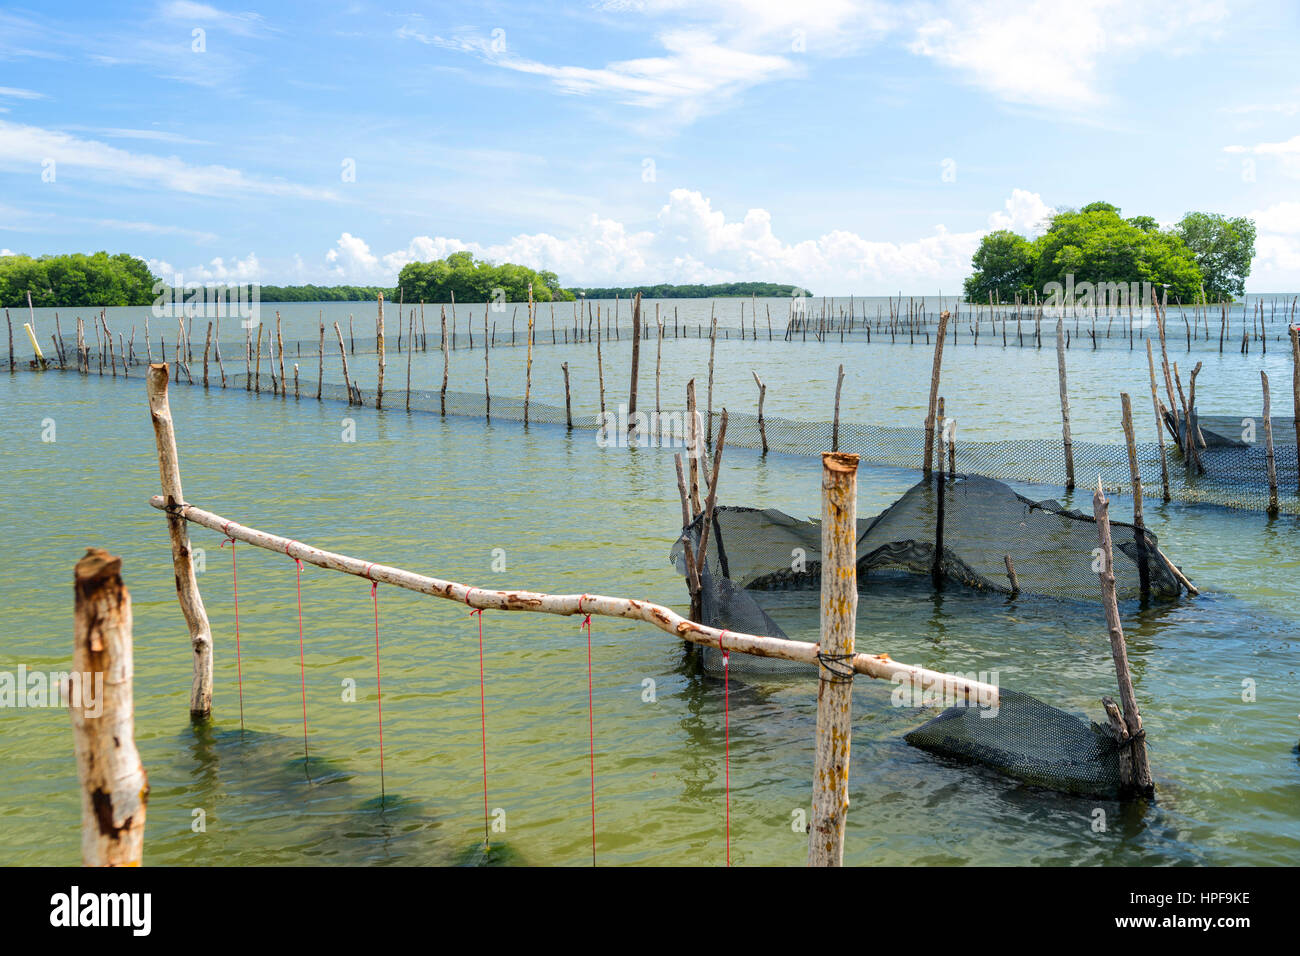 Oyster hatchery in a bay of the caribbean sea - Stock Image